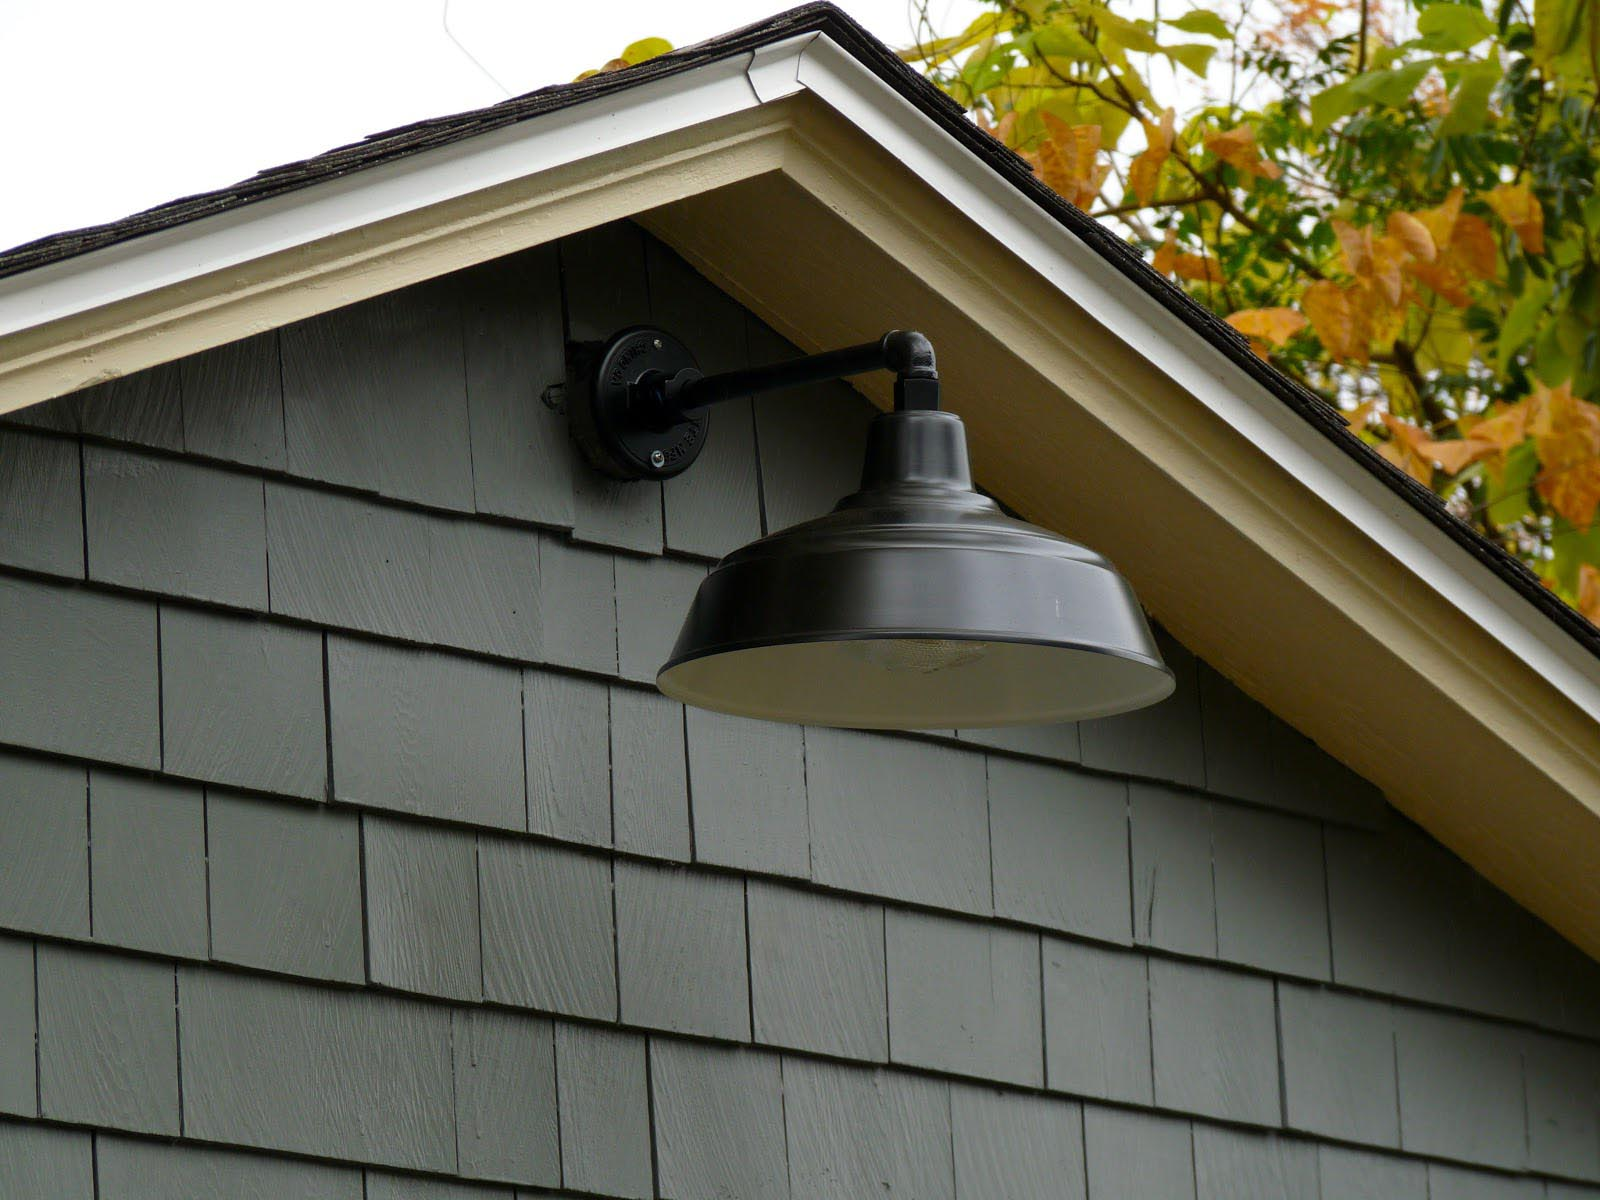 Exterior barn lighting fixtures lighting ideas for Exterior lighting design